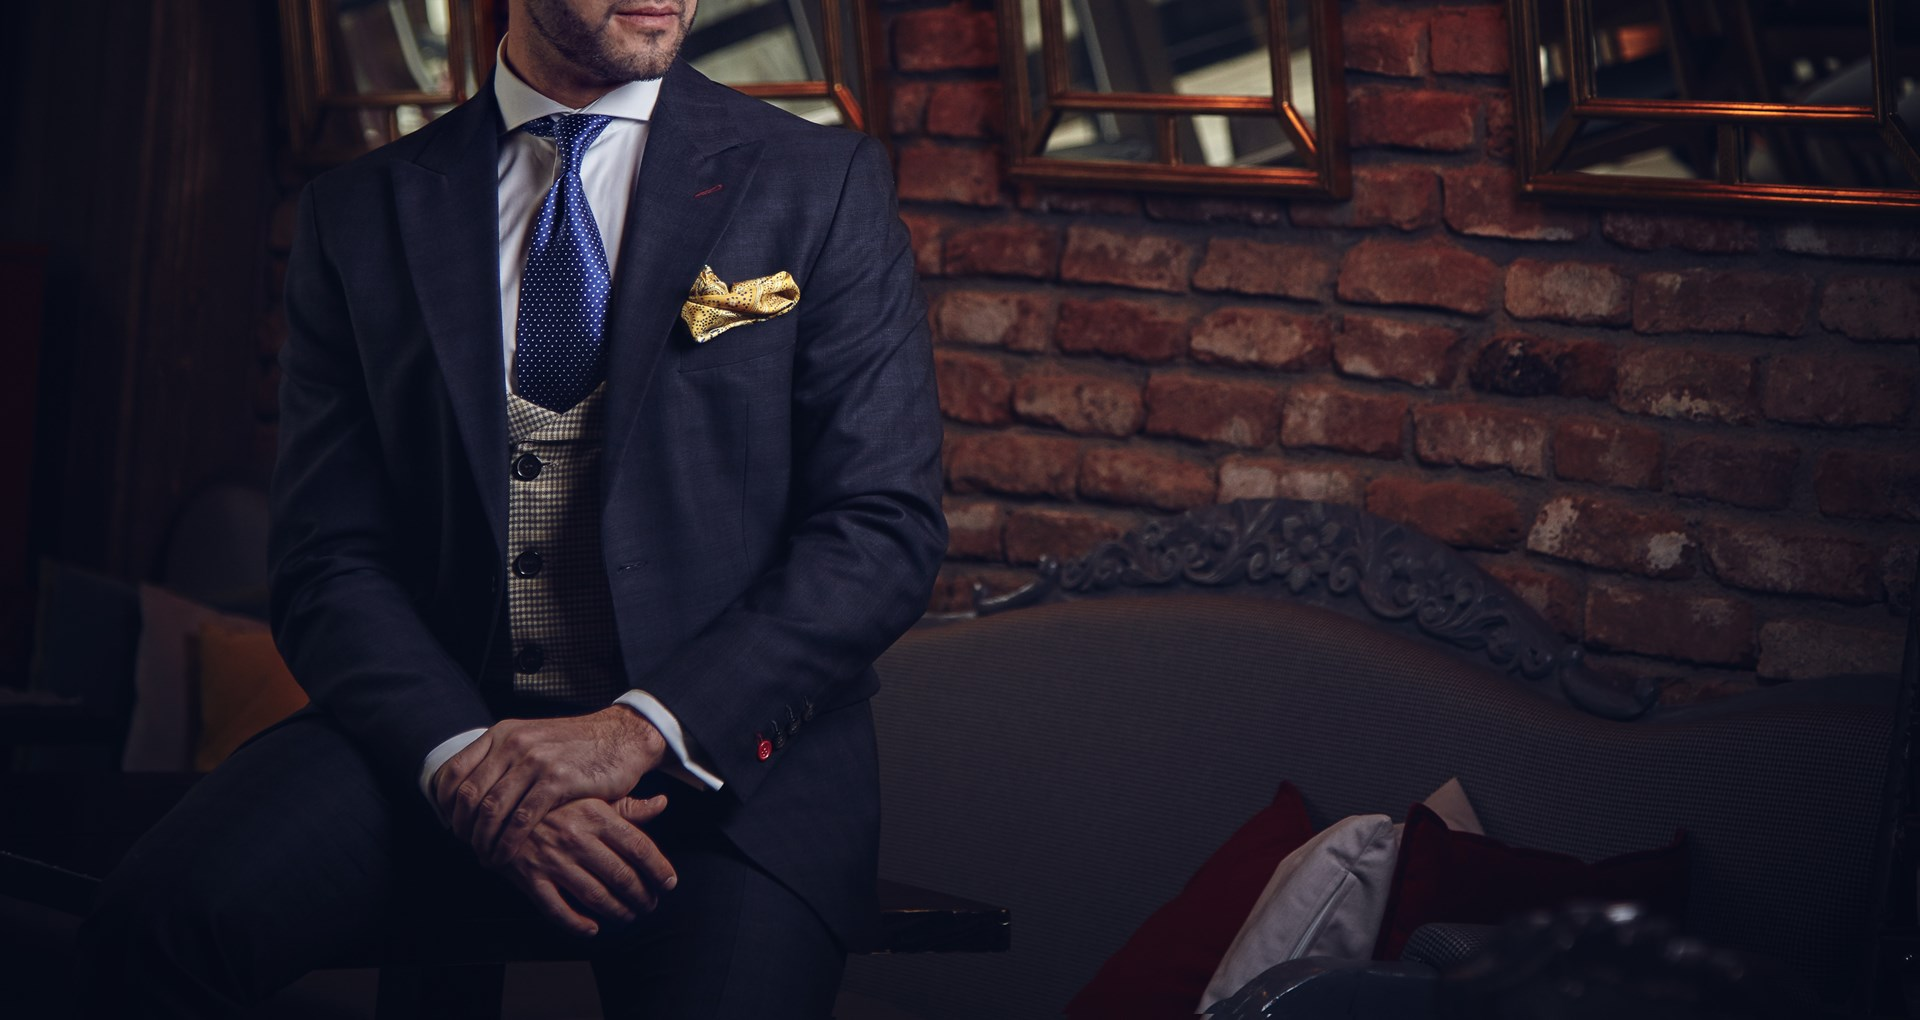 52053651 How to Buy Great Suits on eBay for Nothing - Foundation for Economic ...